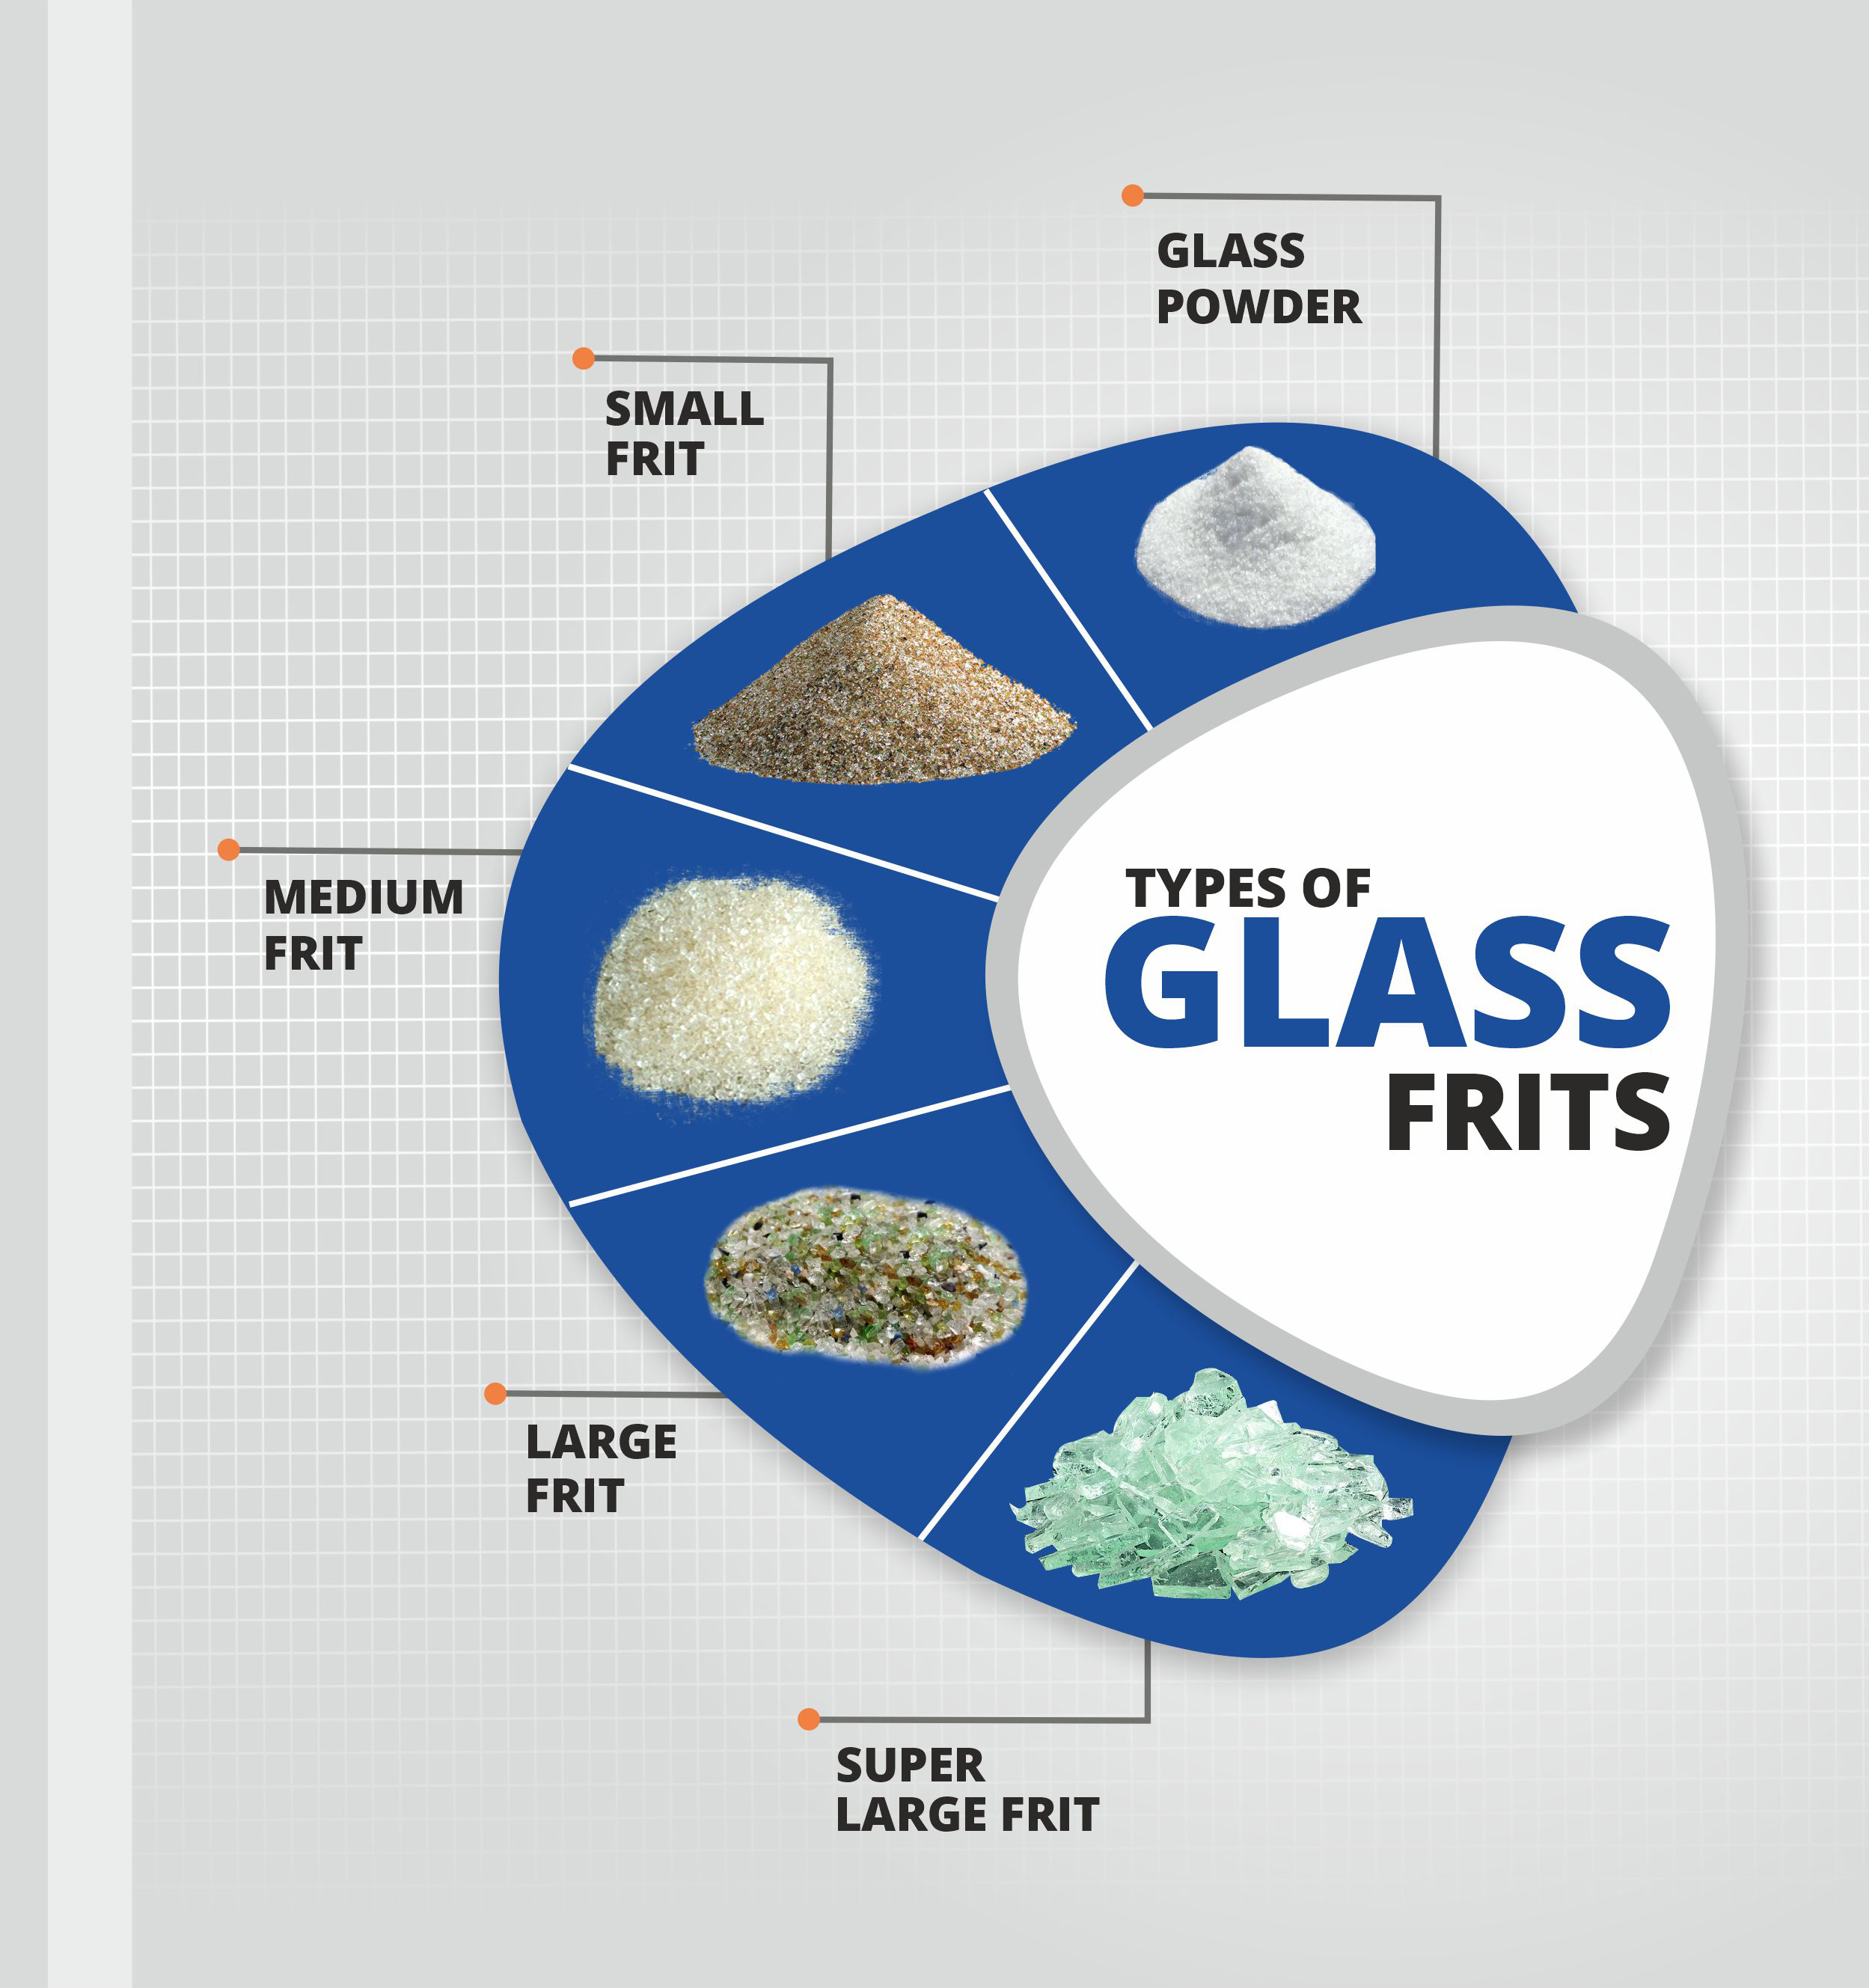 Types of Glass Frit